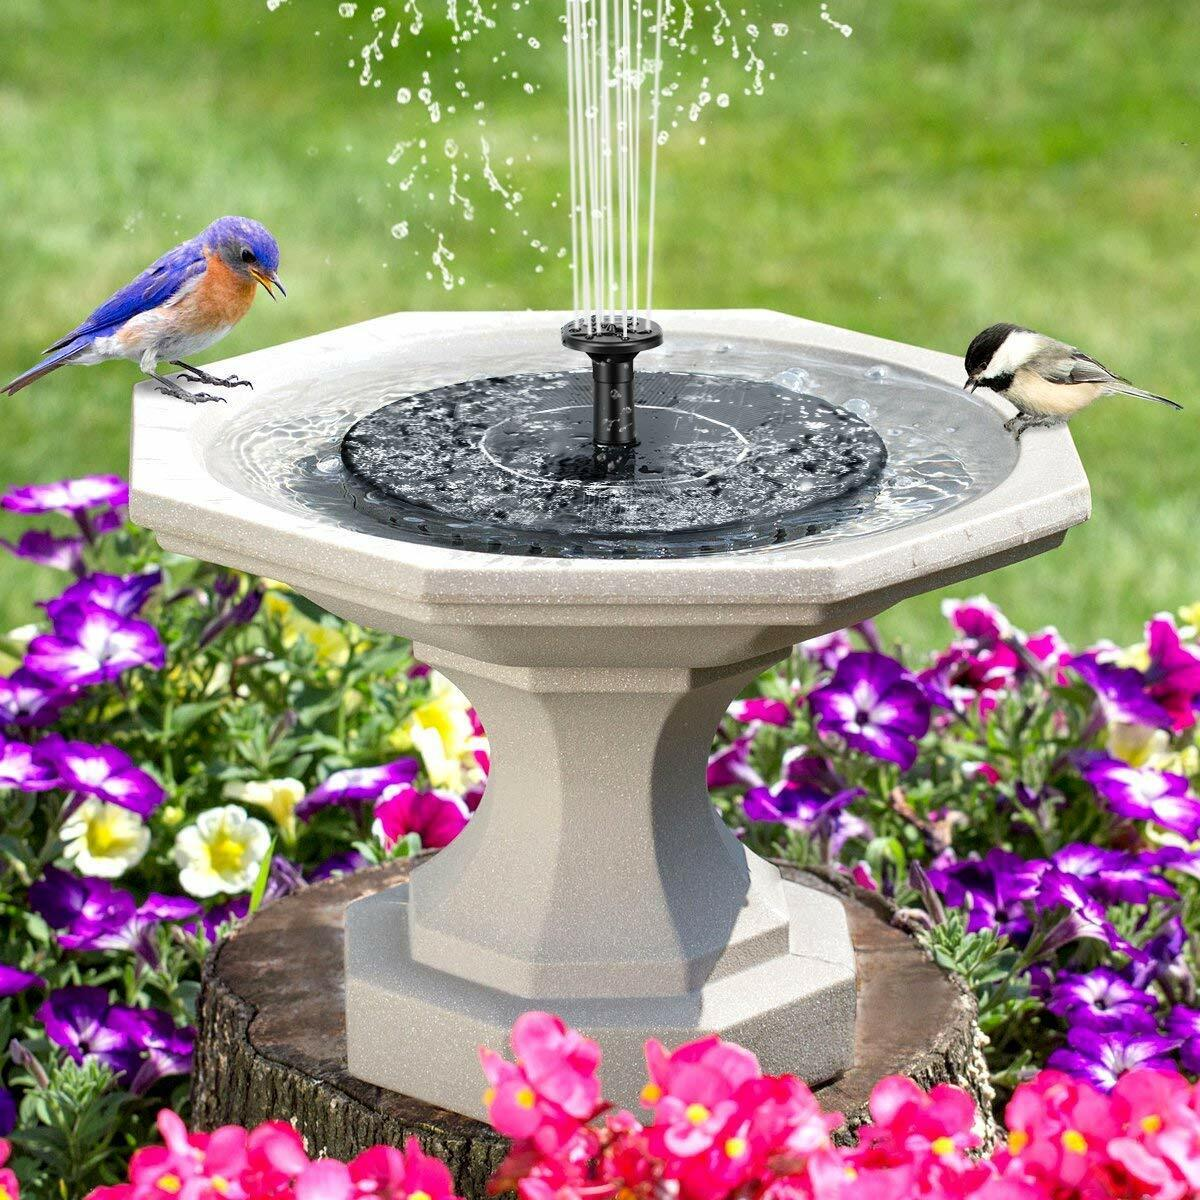 Outdoor Solar Bird Bath Water Fountain Pump Floating Pool Garden Aquarium